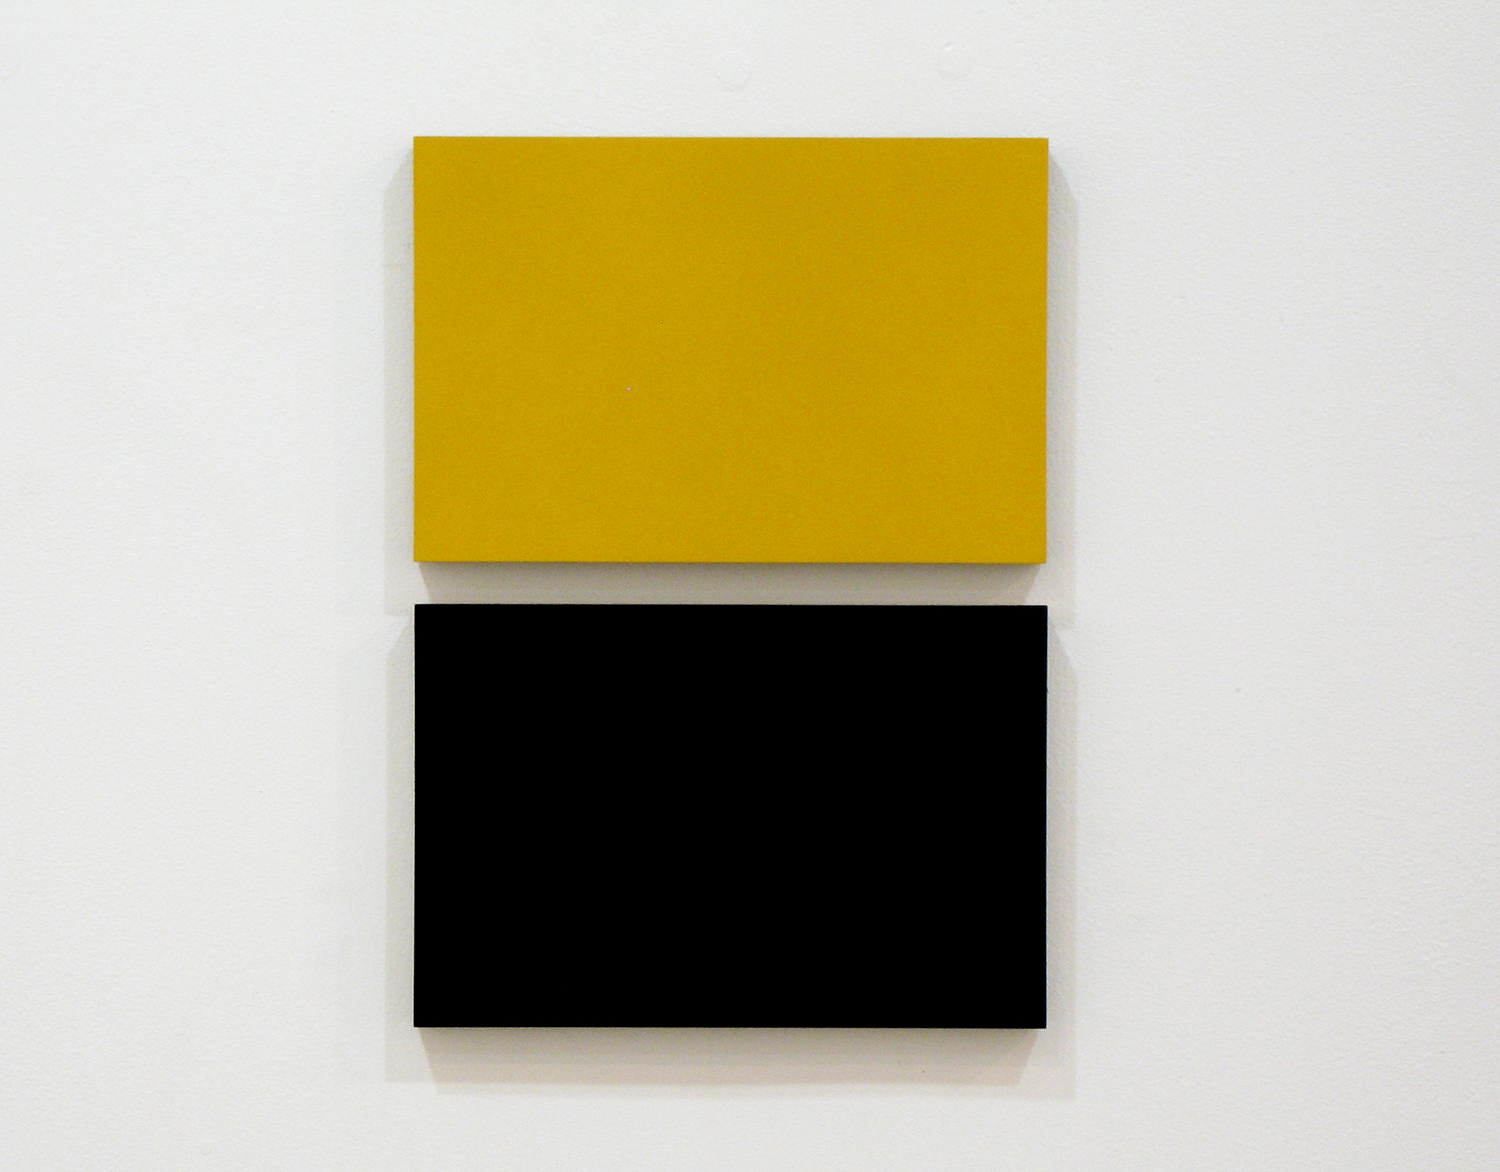 2col-09(ochre & black)casein, pigment on canvas & aluminum (2 parts, 10 x 15 cm each)